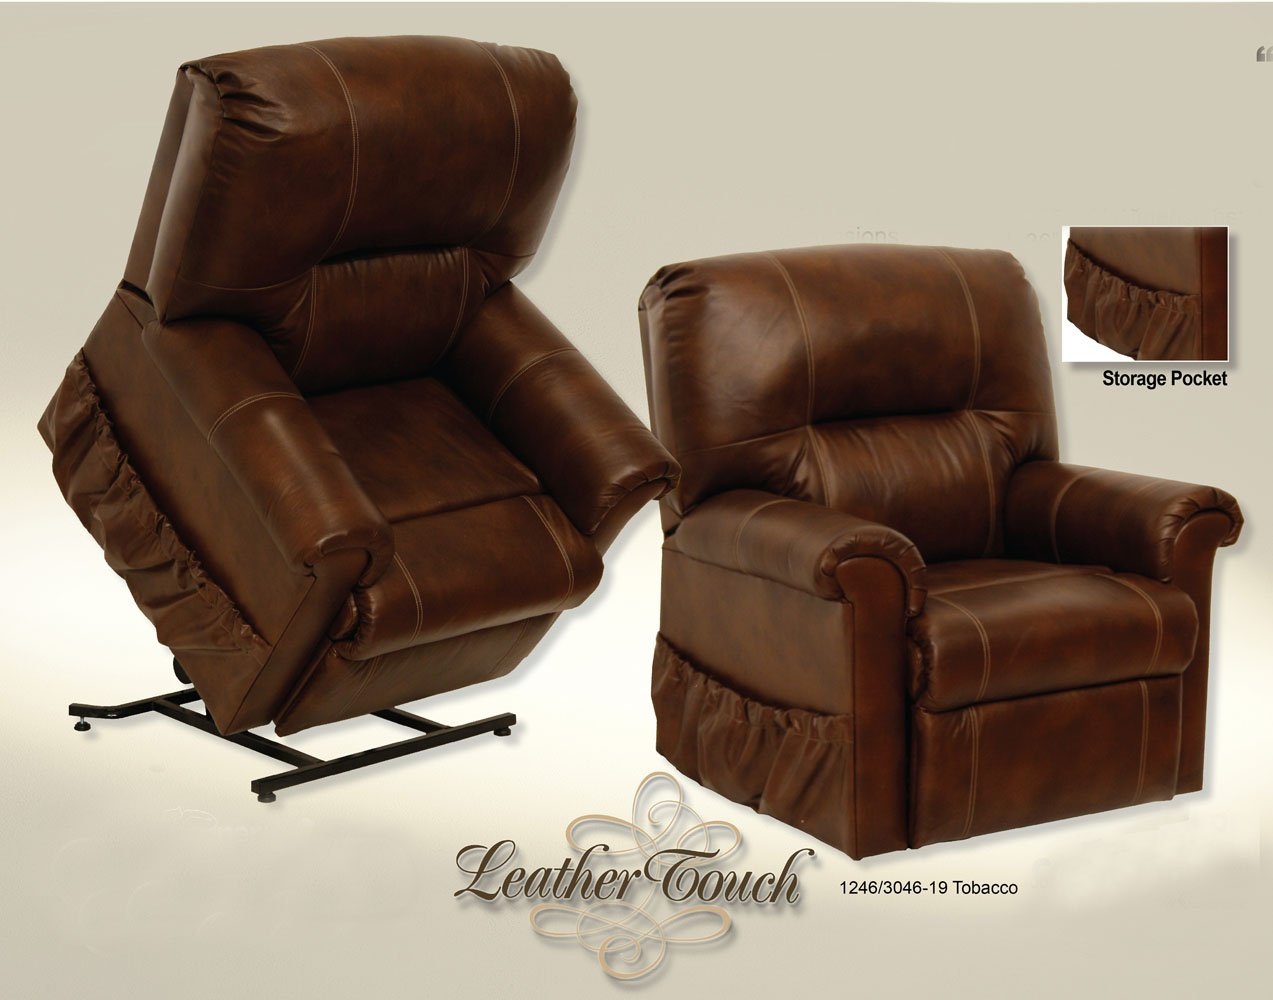 Whats The Best Heavy Duty Recliners For Big Men Up To Lbs - Electric reclining chairs for the elderly